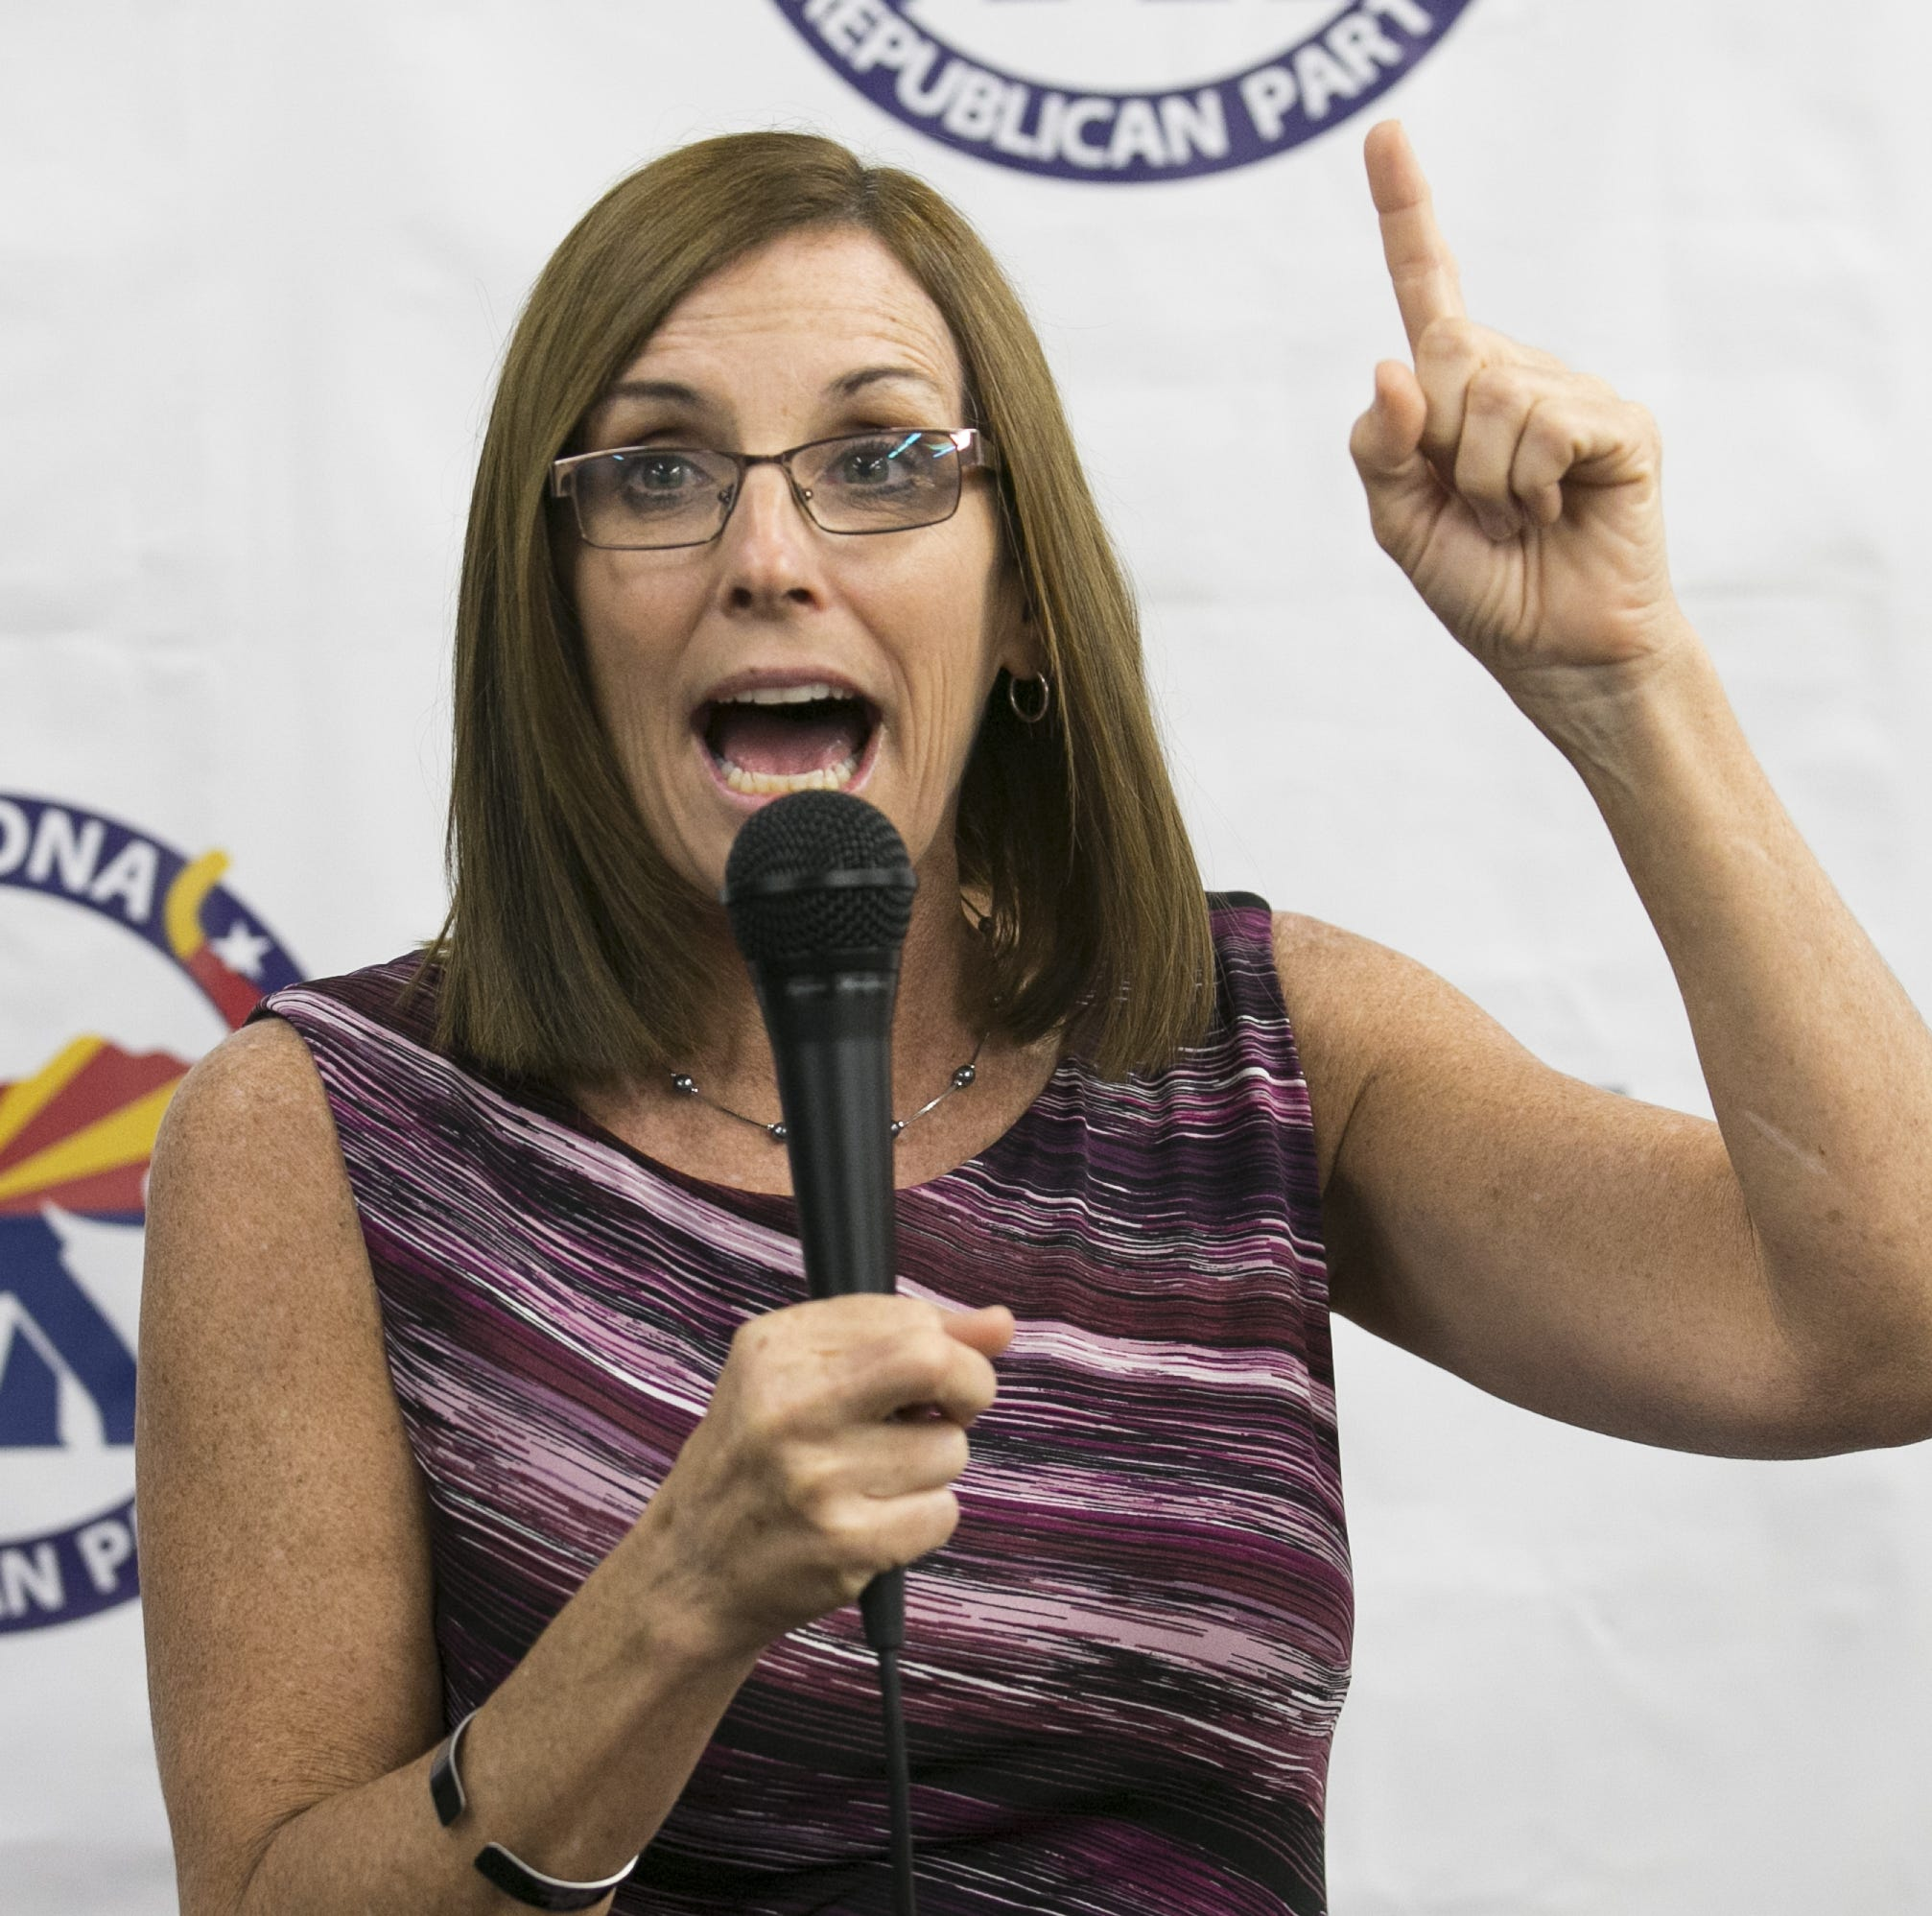 Martha McSally earns her 4th 'mostly false' rating from PolitiFact